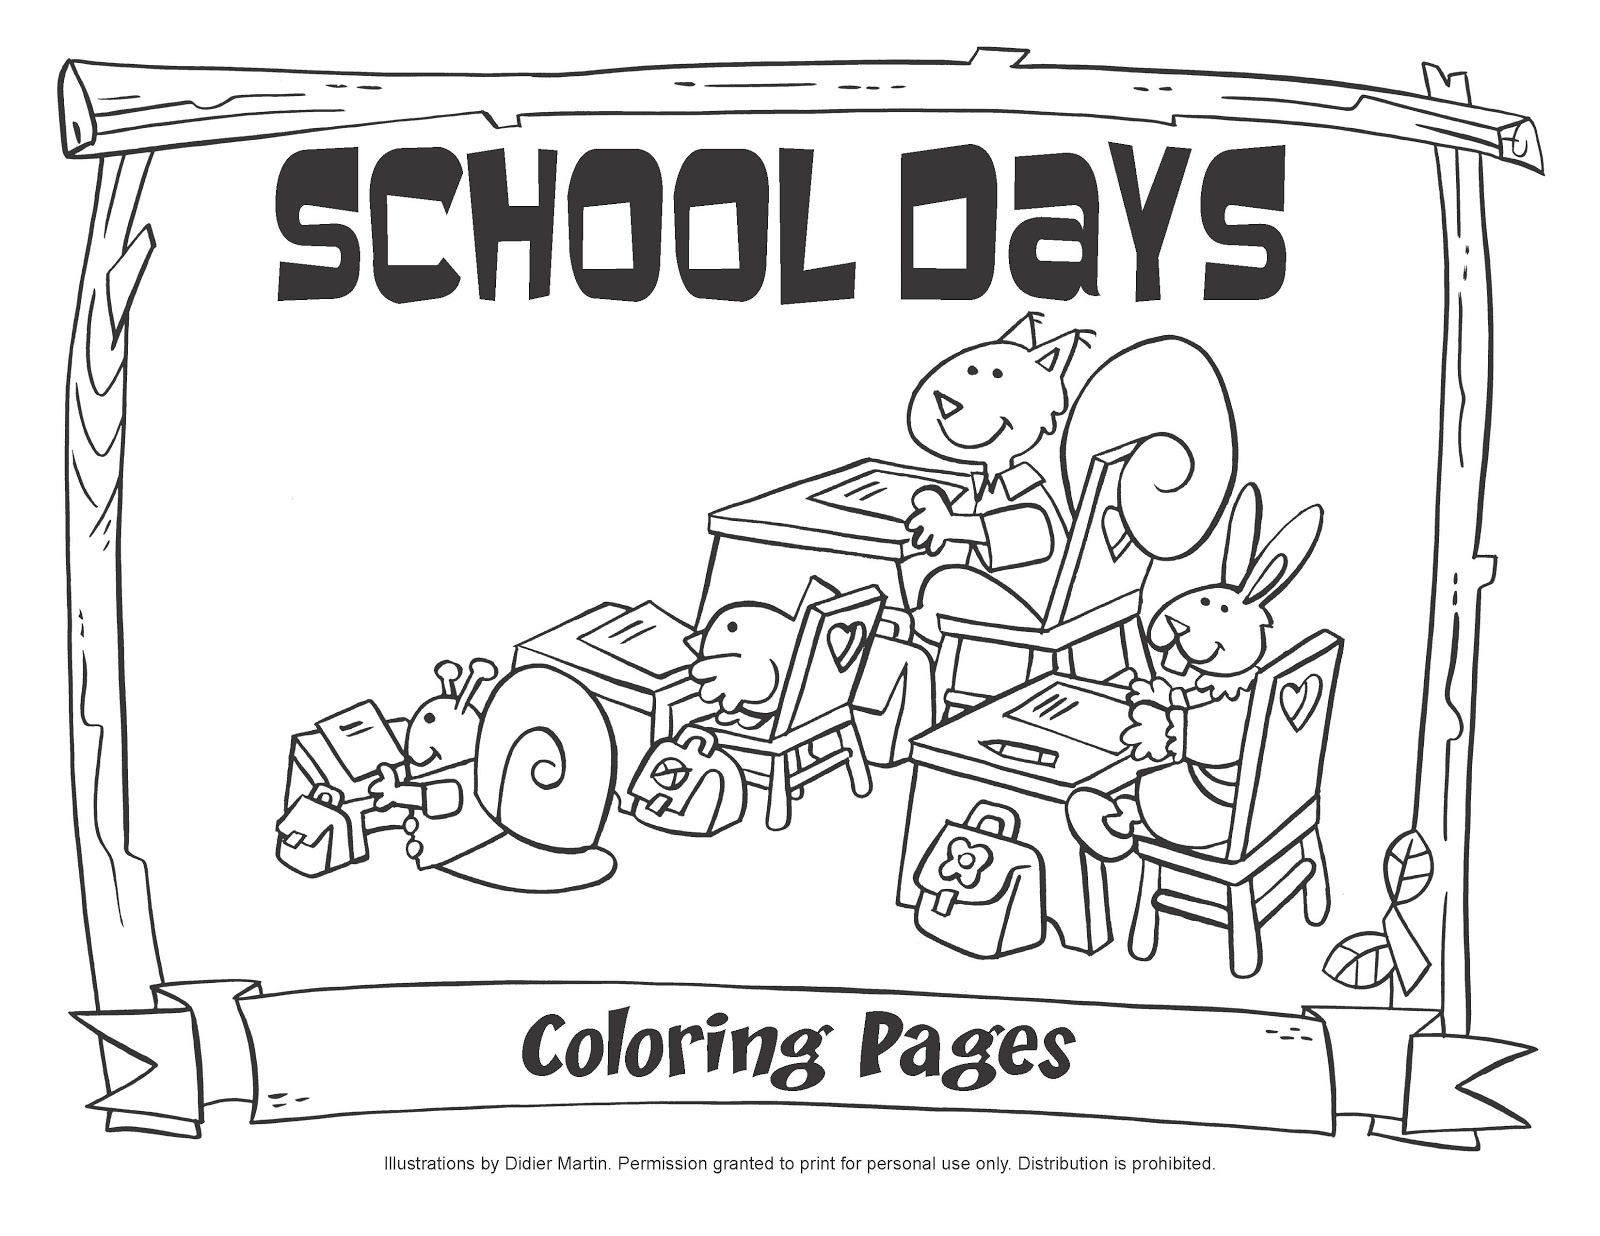 1600x1236 My Little House School Days Coloring Pages